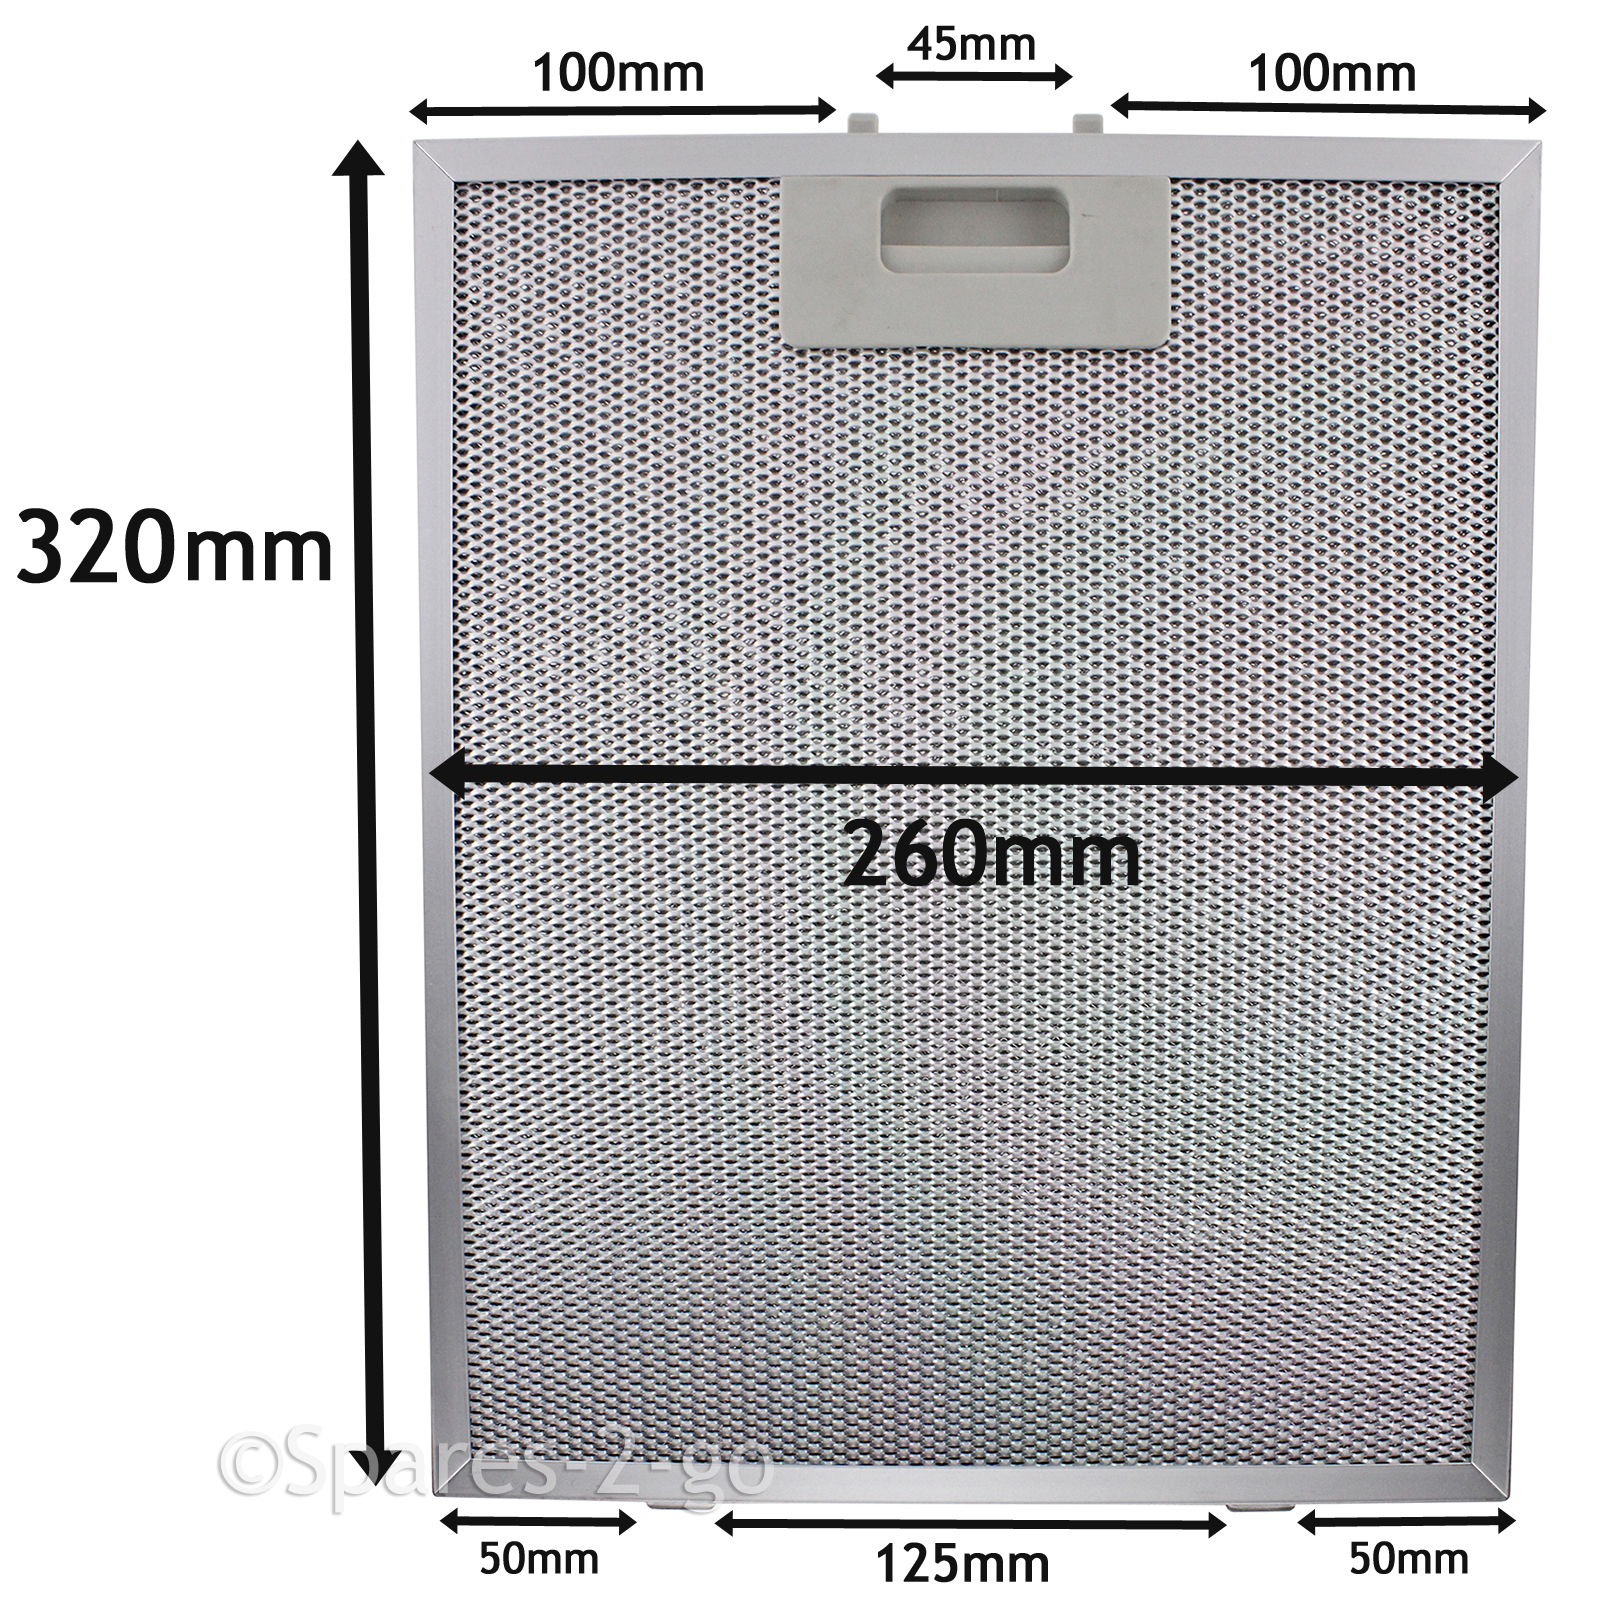 METAL MESH FILTER For BOSCH NEFF SIEMENS Cooker Hood Vent Fan 320 x ...